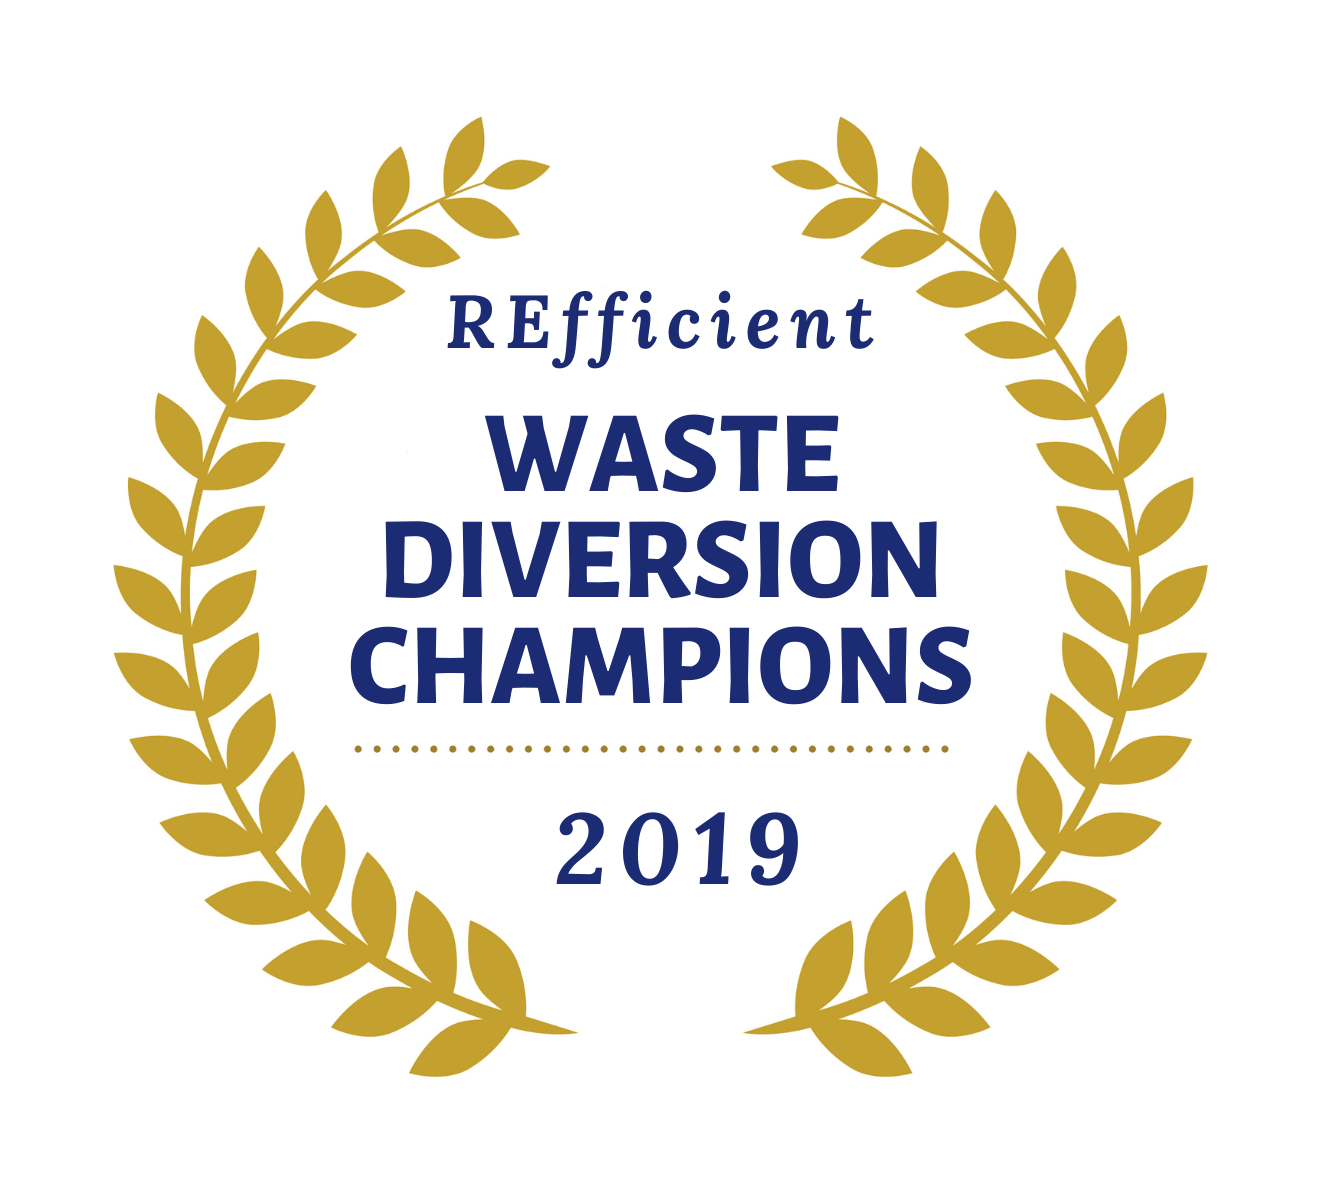 waste-diversion-champions.png